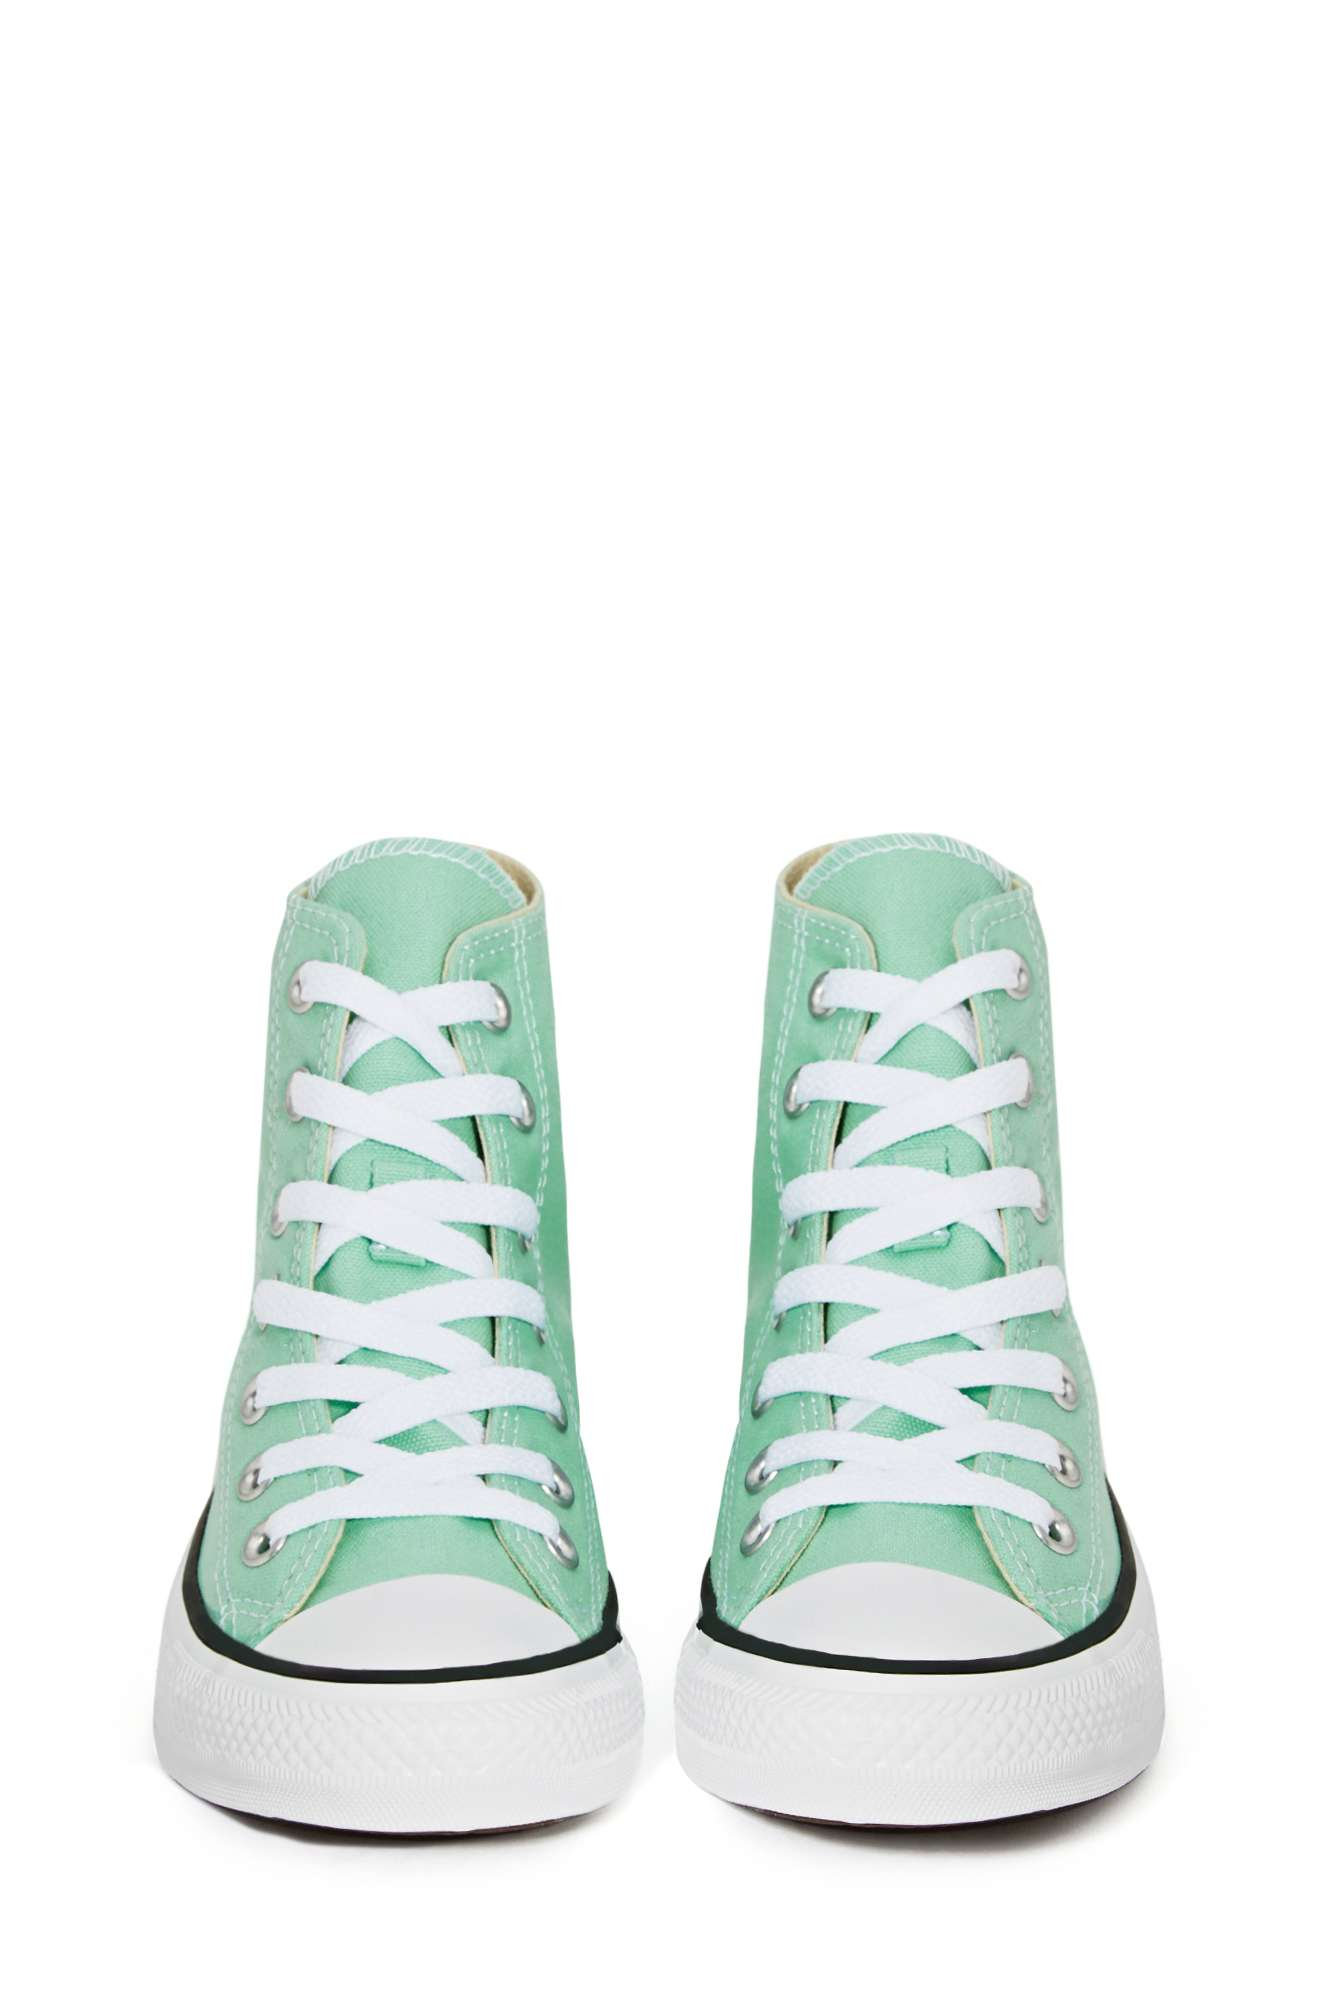 d73b7c3a601 Gallery. Women s Chunky Sneakers Women s Commes Des Garcons Play Chuck  Taylor ...